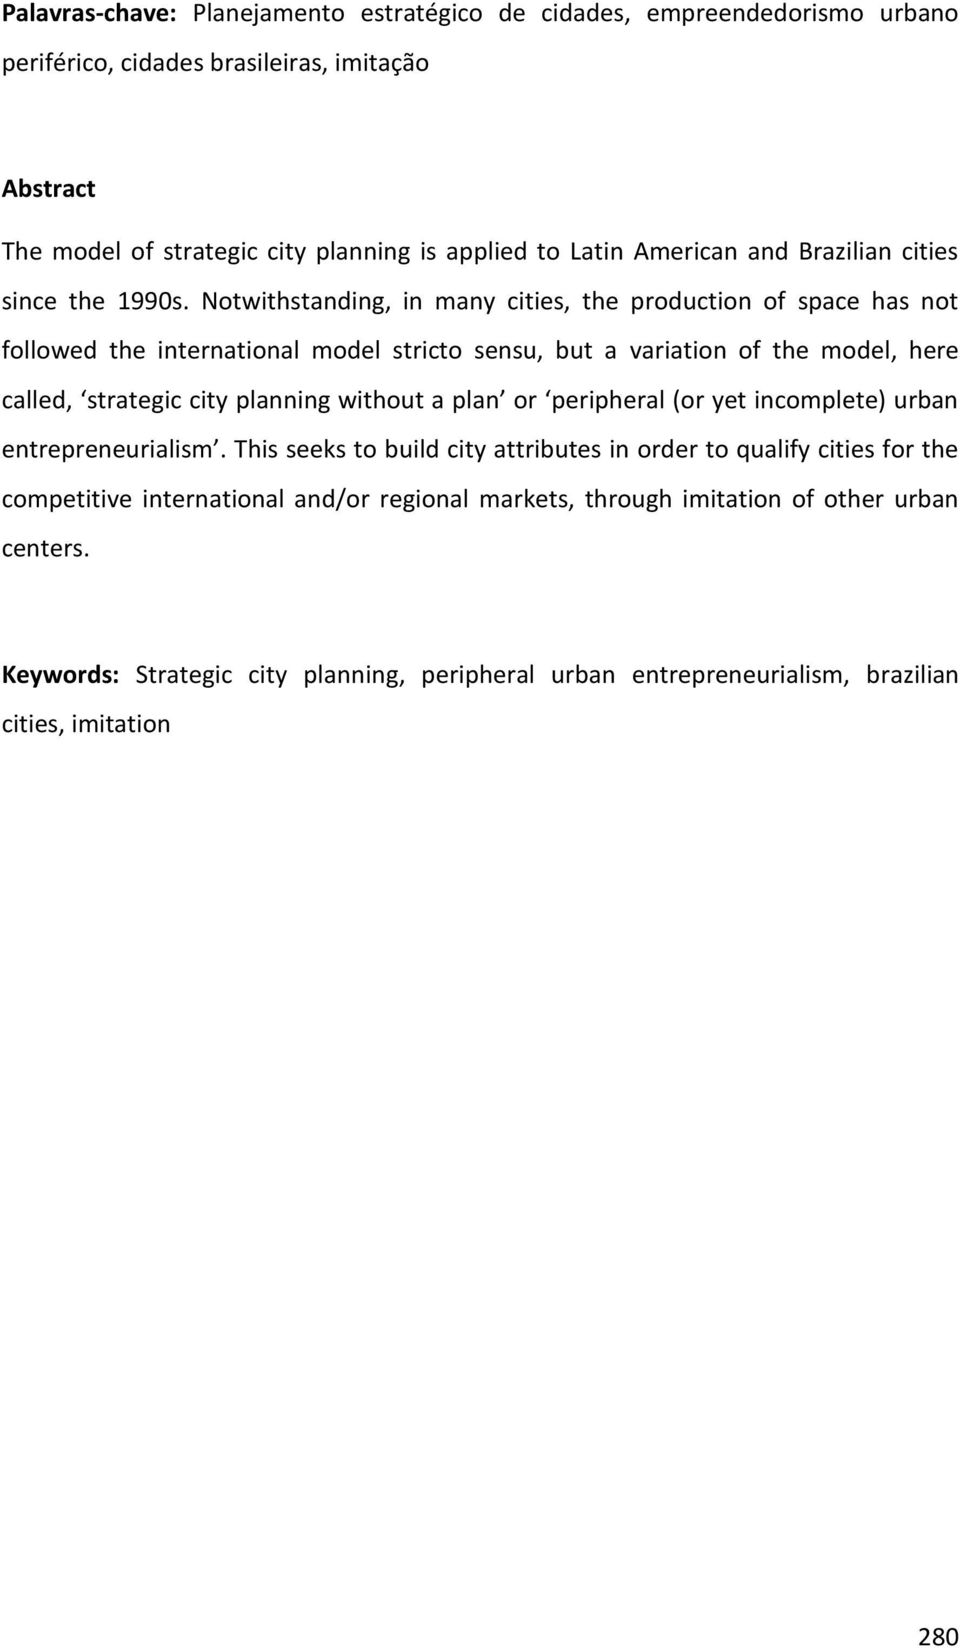 Notwithstanding, in many cities, the production of space has not followed the international model stricto sensu, but a variation of the model, here called, strategic city planning without